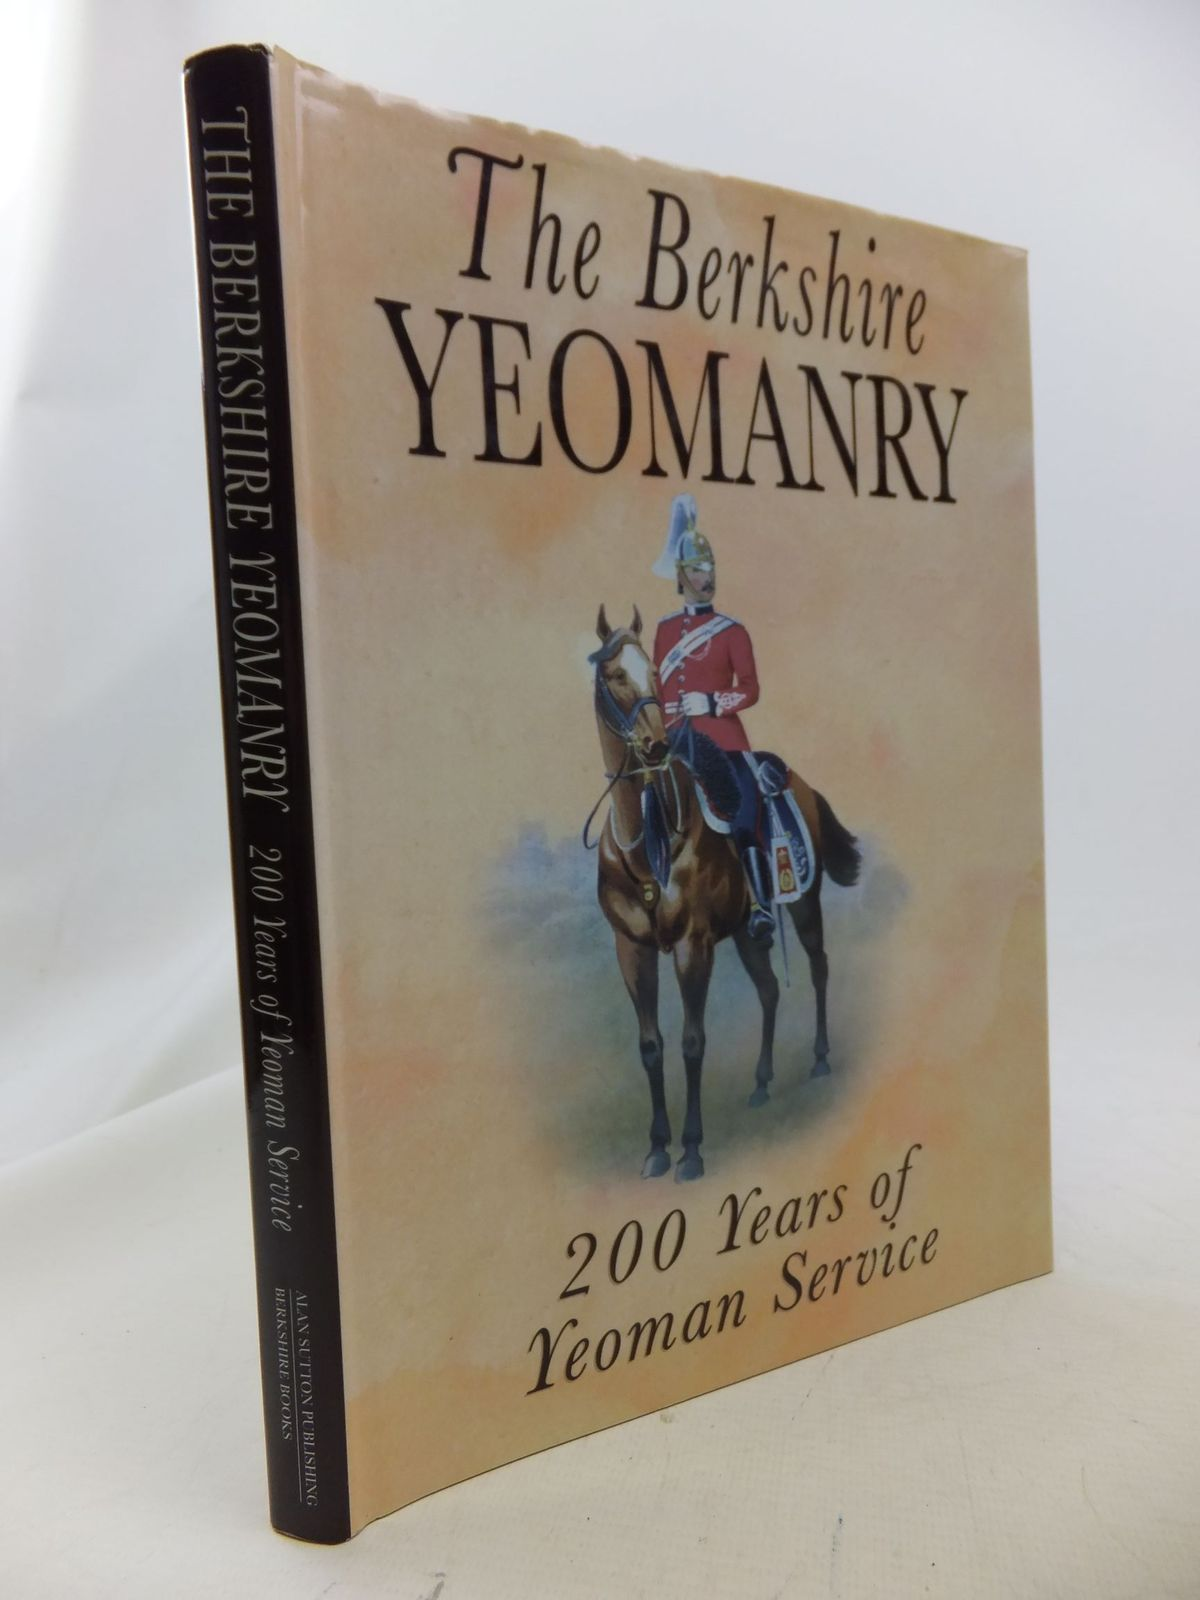 Photo of THE BERKSHIRE YEOMANRY 200 YEARS OF YEOMAN SERVICE written by Verey, Anthony<br />Sampson, Stuart<br />French, Andrew<br />Frost, Simon published by Alan Sutton (STOCK CODE: 2114548)  for sale by Stella & Rose's Books